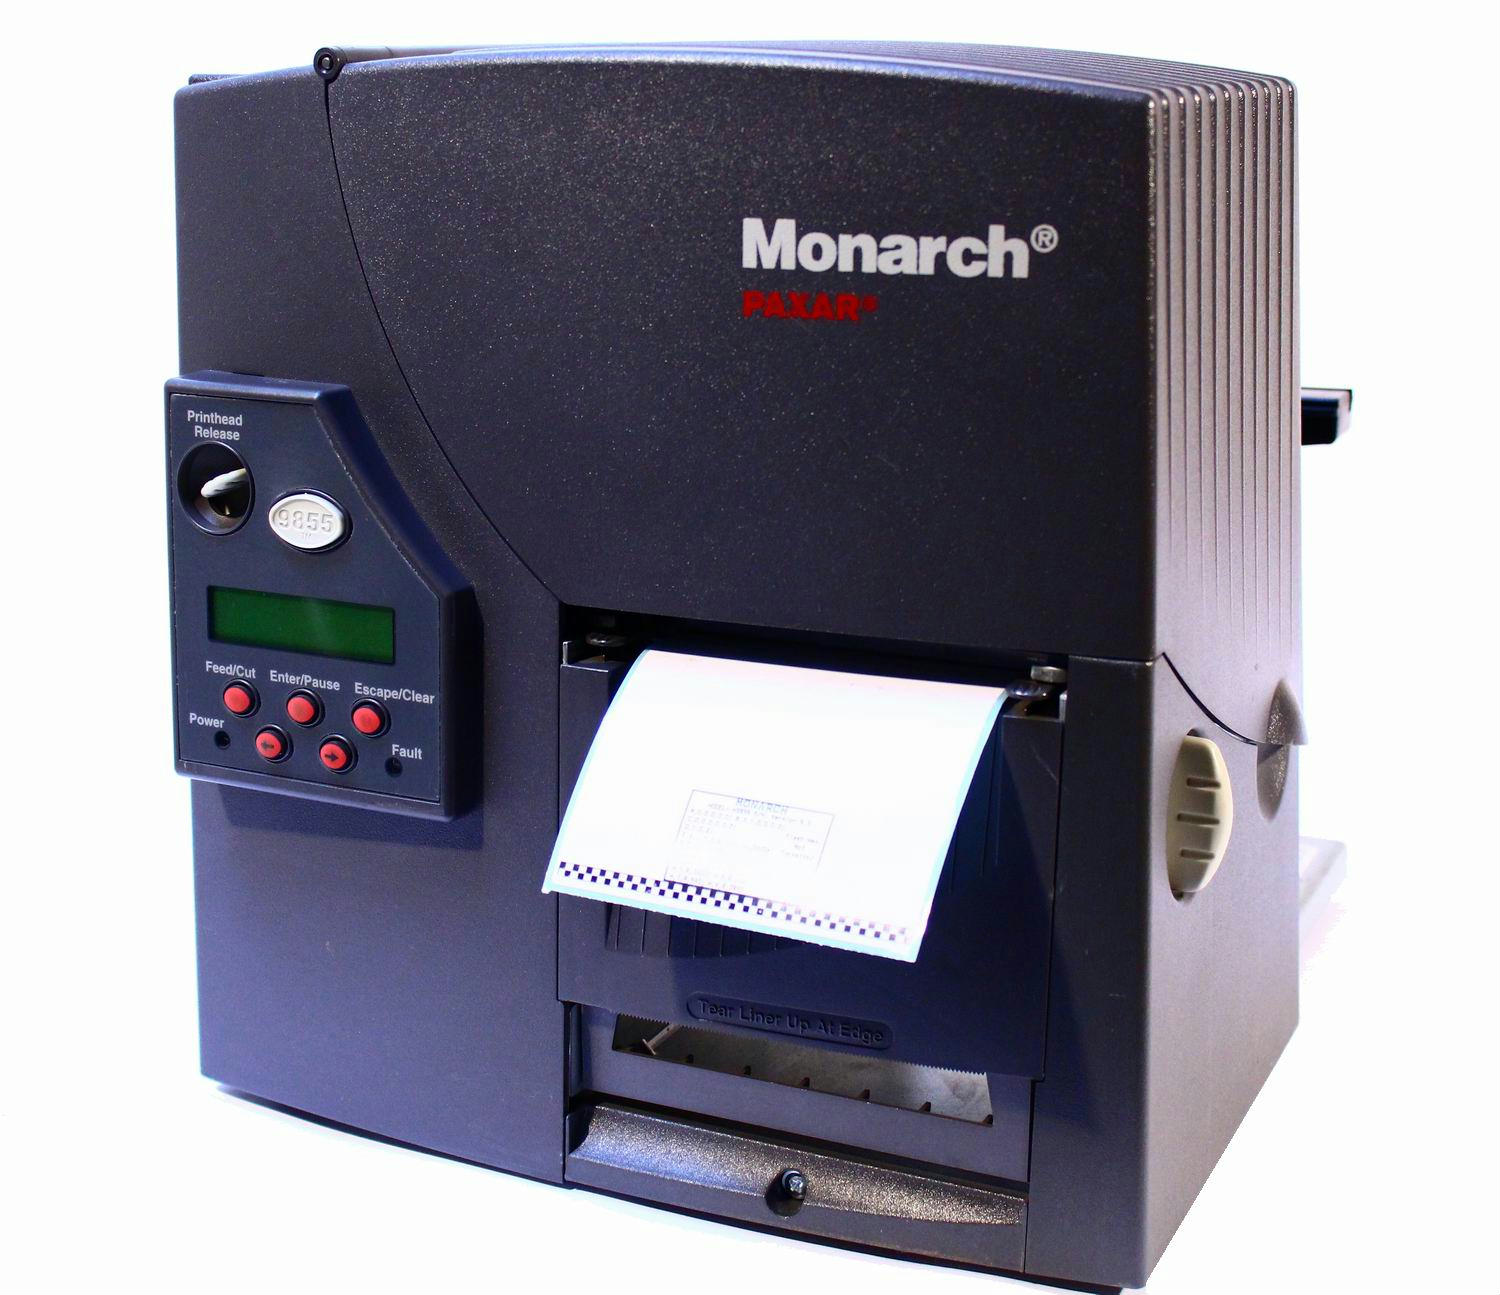 avery dennison monarch 1131 manual